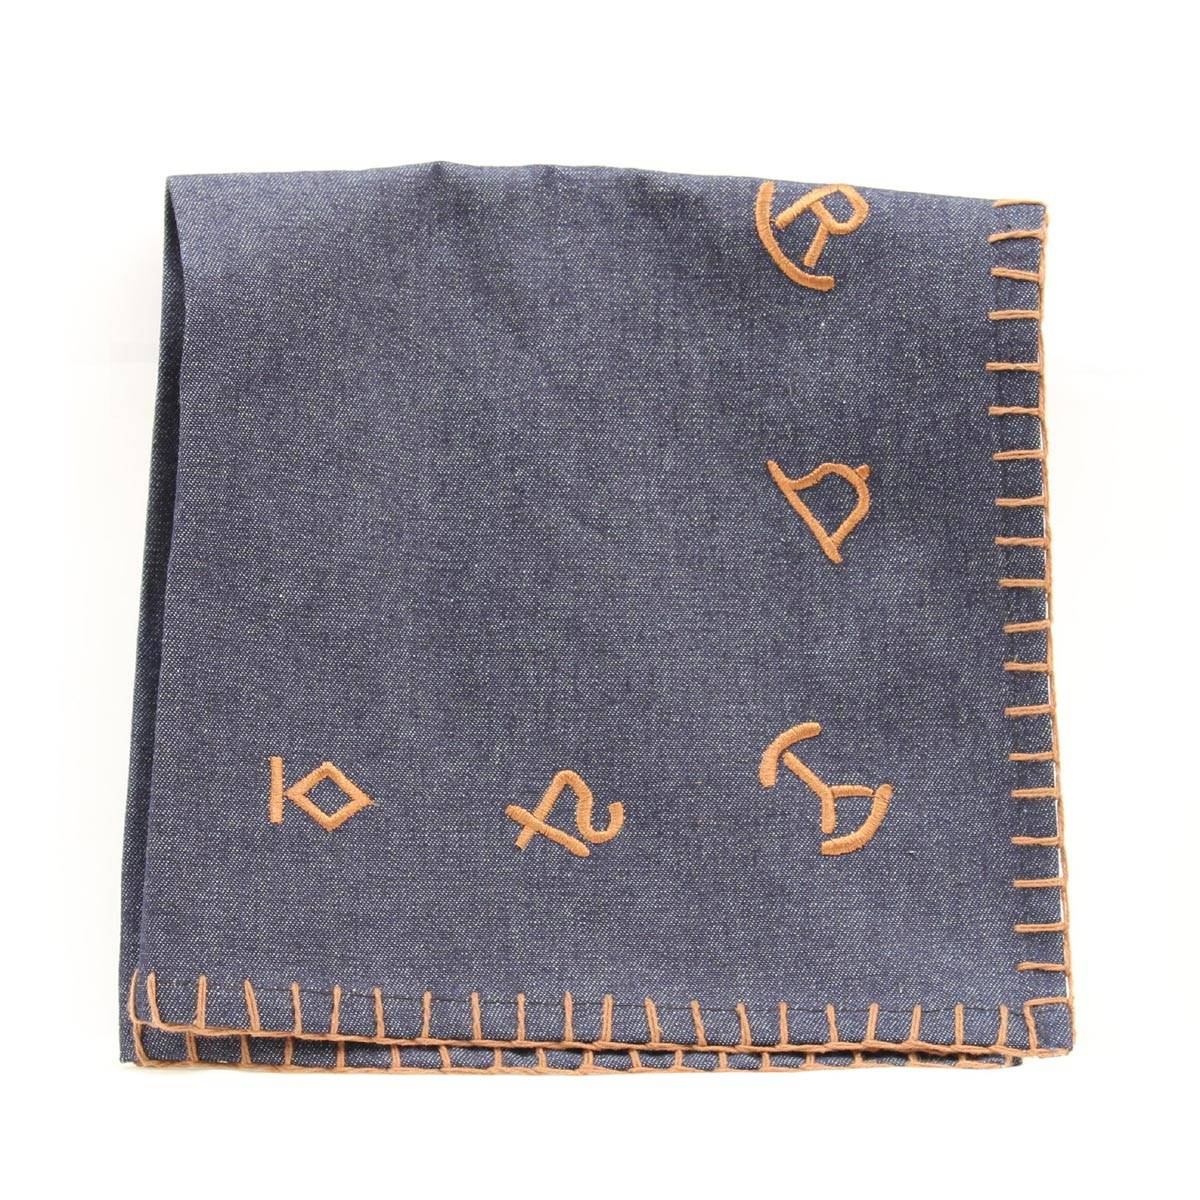 Western Moments Branded Denim Napkin